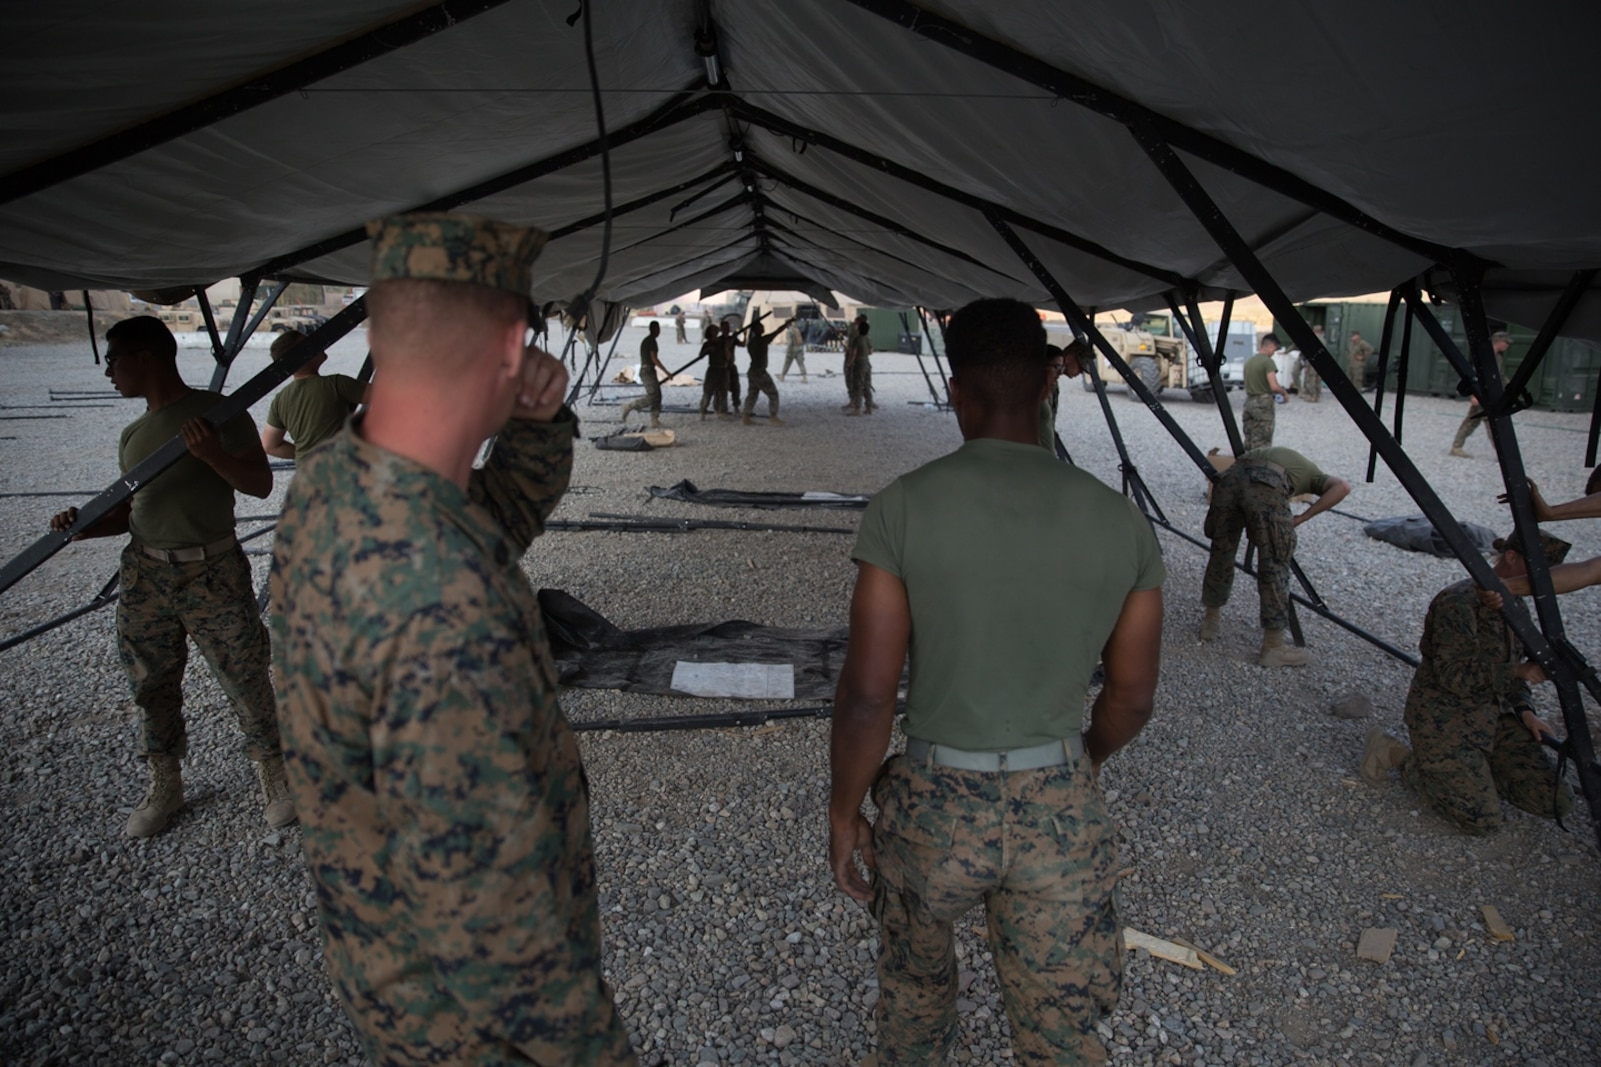 U.S. Marines with Combat Logistics Battalion 5 (CLB-5), Combat Logistics Regiment 1, 1st Marine Logistics Group, help form the foundation of an expeditionary mess hall on the Marine Corps Mountain Warfare Training Center in Bridgeport, Calif., June 14, 2017. CLB-5 supports the 2d Battalion, 8th Marine Regiment, 2d Marine Division, logistically by tackling the technical aspects of mountainous and cold weather operations by providing them chow, water, and fuel. (U.S. Marine Corps photo by Lance Cpl. Timothy Shoemaker)